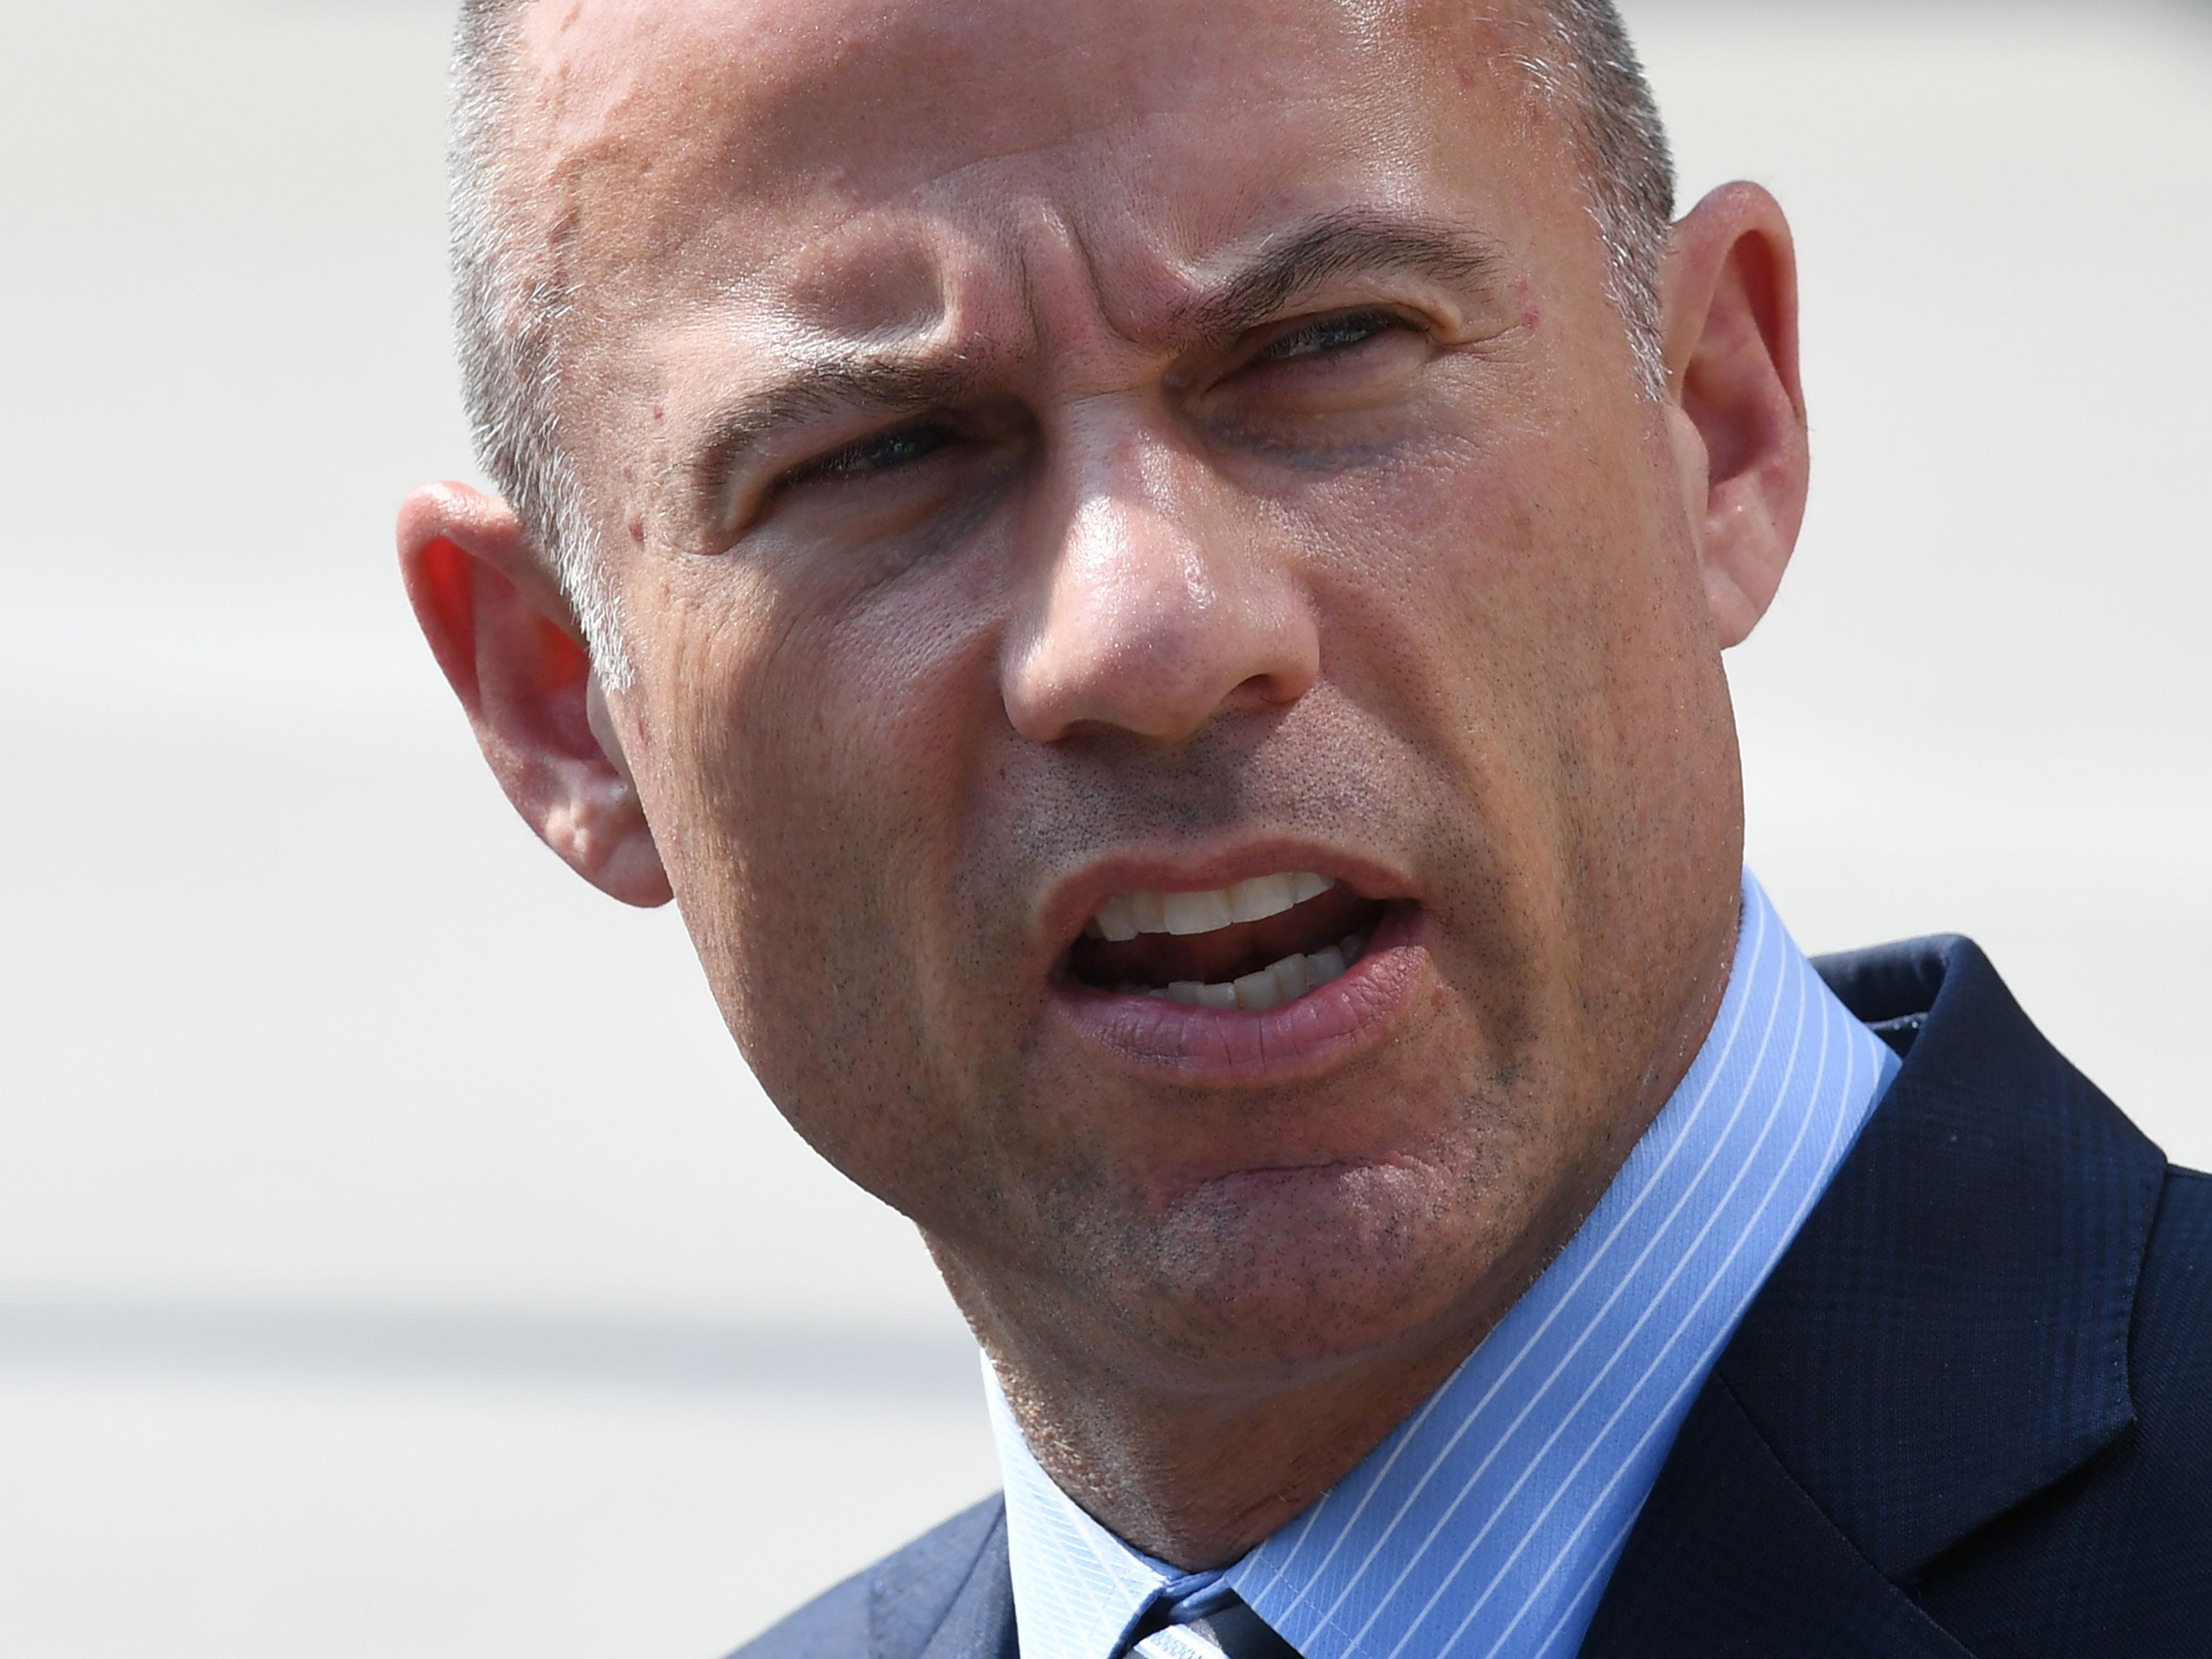 Avenatti is latest man to deny domestic violence. Stats show they can't all be innocent.